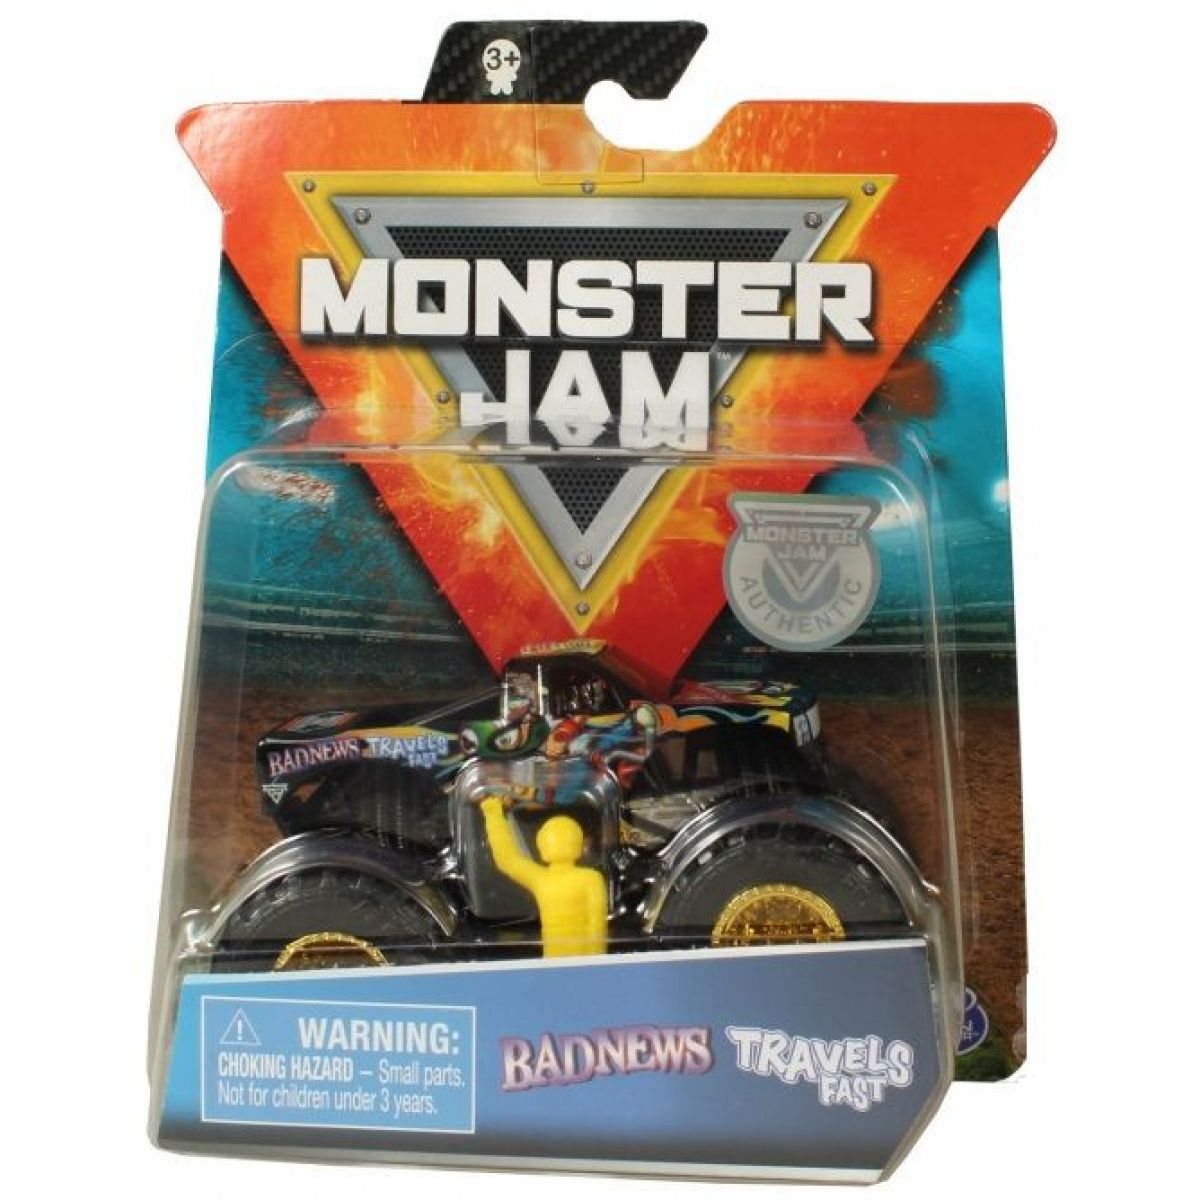 Monster Jam Sběratelská Die-Cast auta 1:64 Badnews Travels Fast